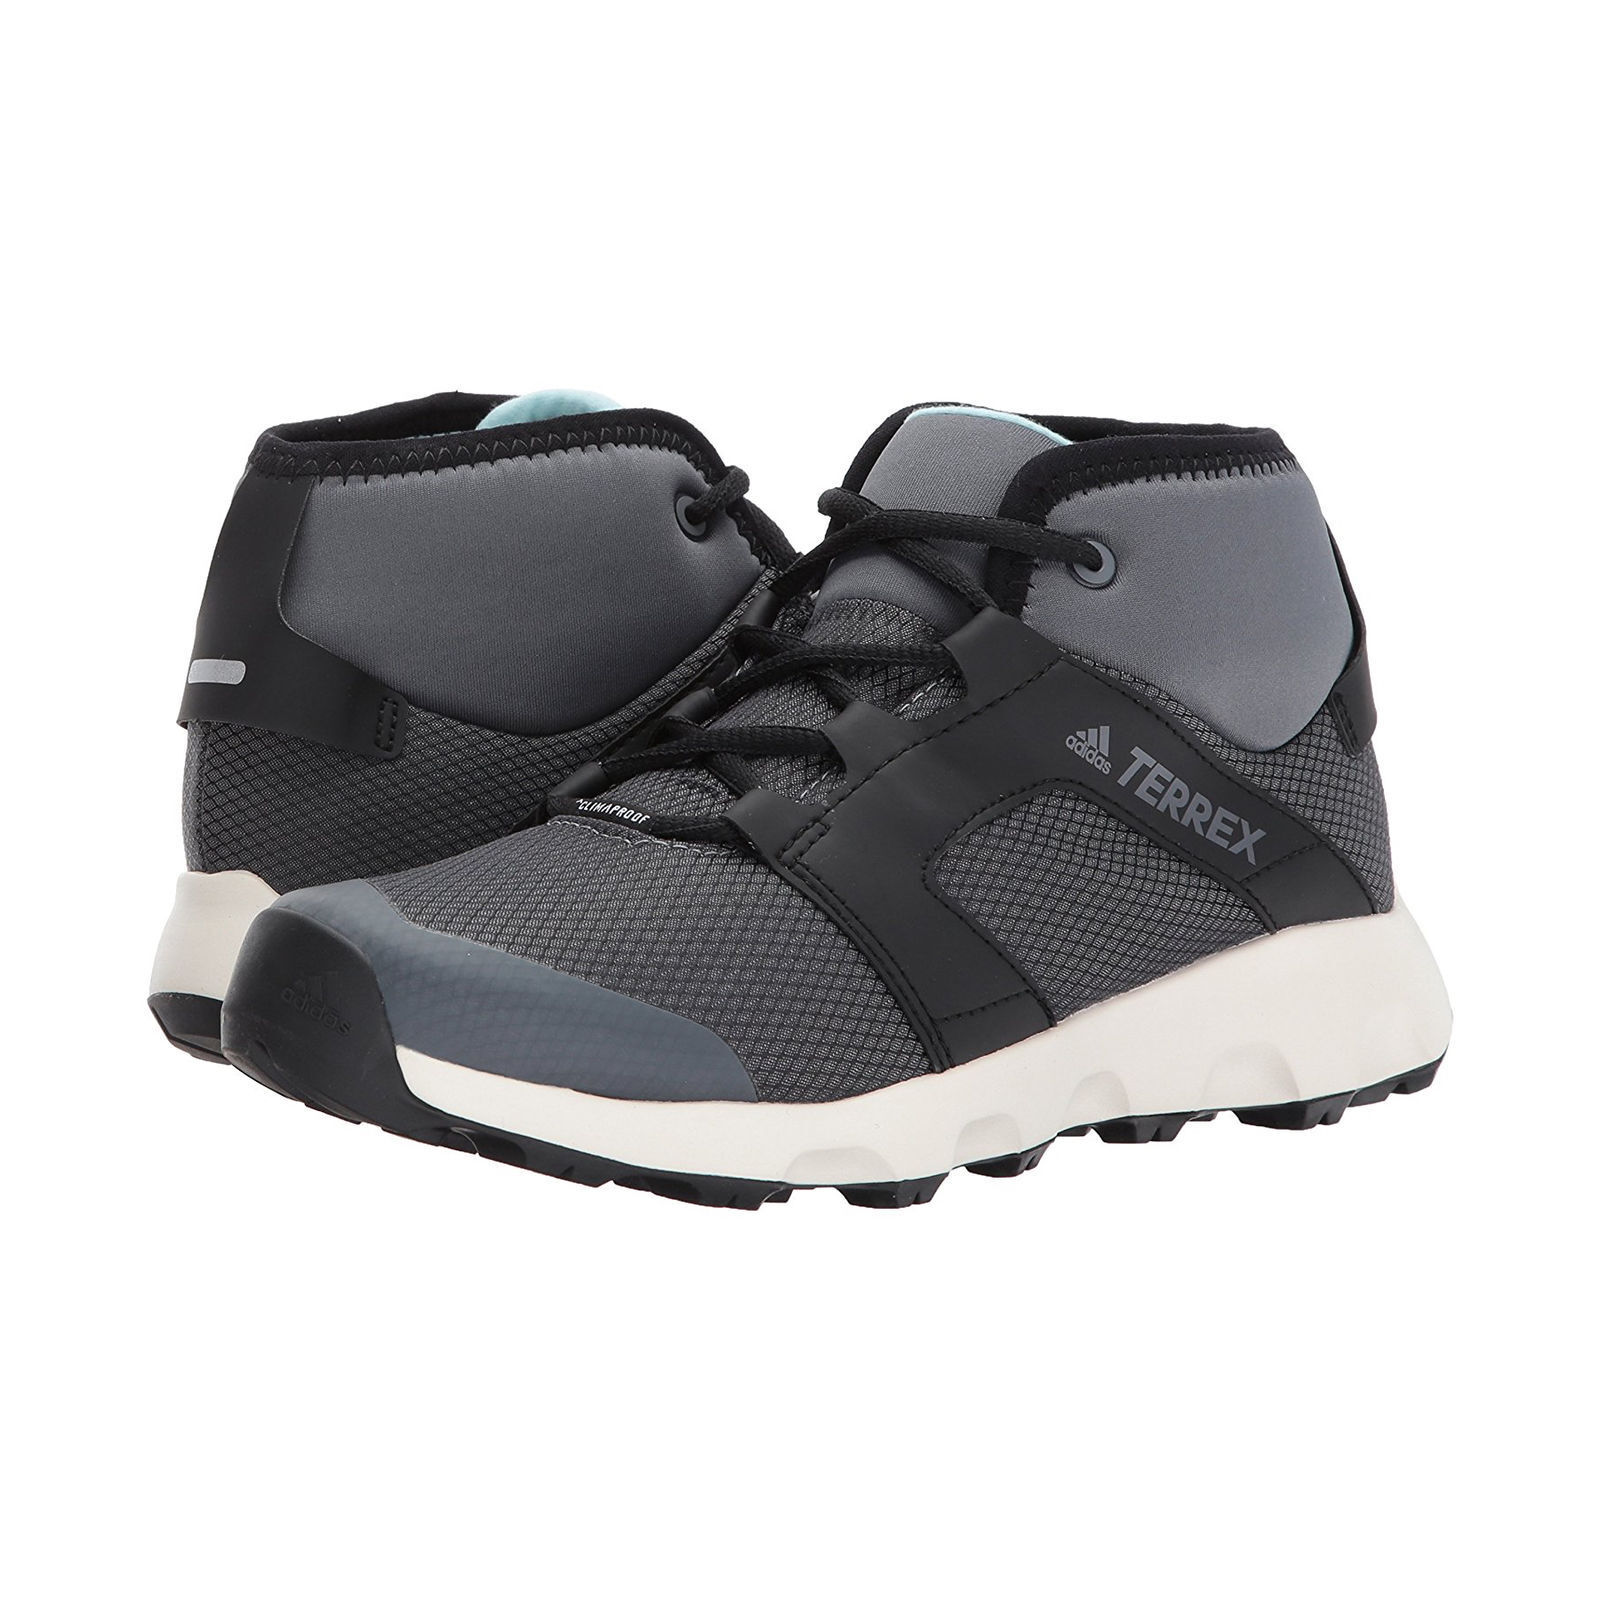 Adidas donne terrex voyager voyager voyager cw cp atletico scarpe nuove! a00610